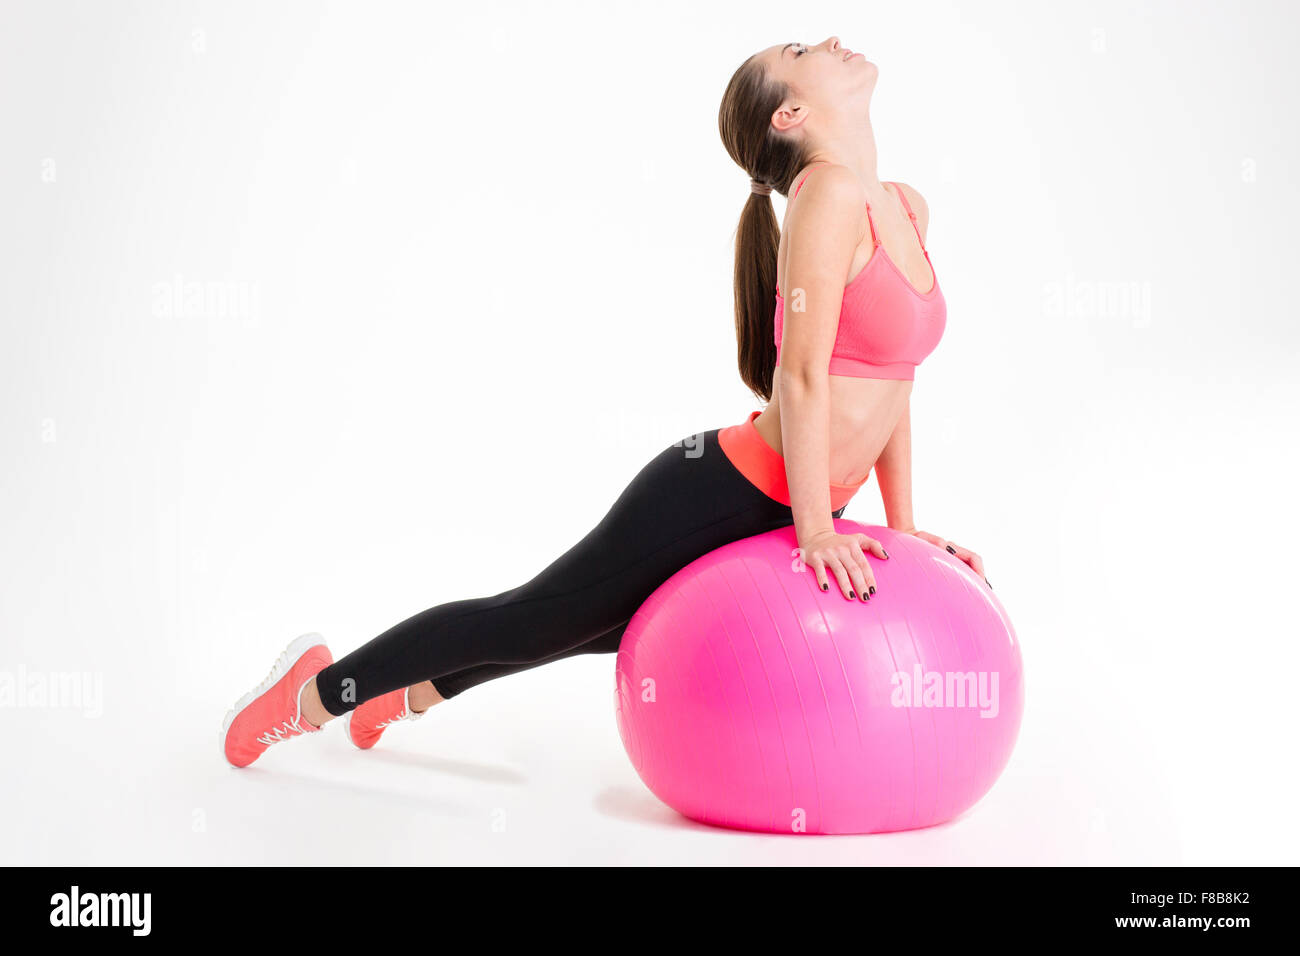 Focused attractive young fitness woman in pink top and black leggings doing stretching on pink fitball over white - Stock Image